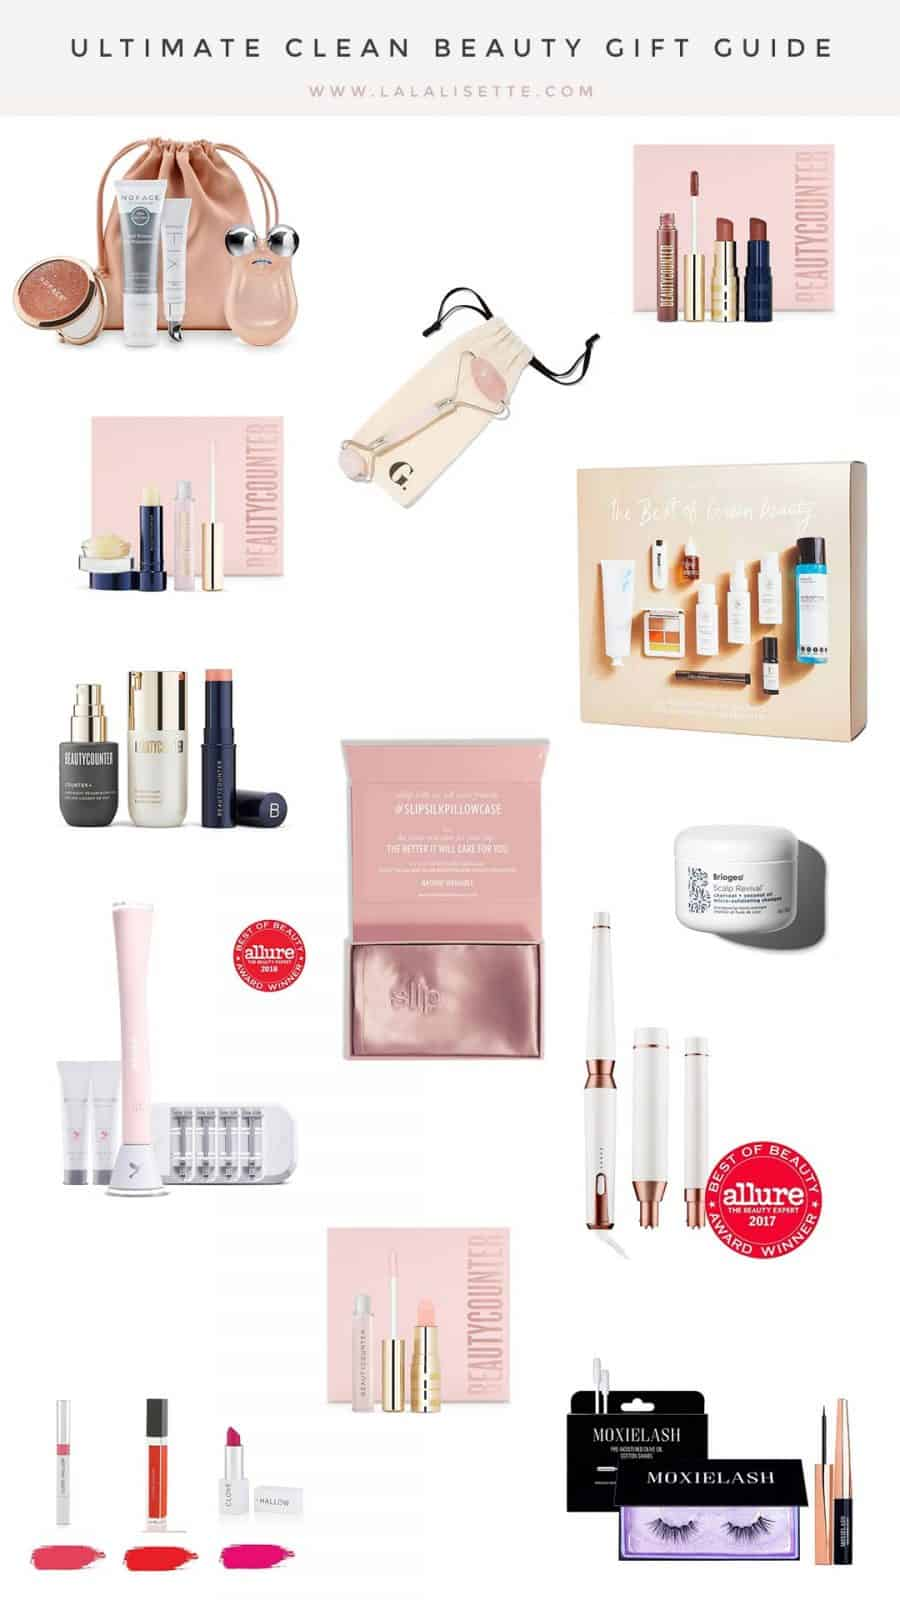 graphic of clean beauty items with text: Ultimate Clean Beauty Gift Guide www.lalalisette.com